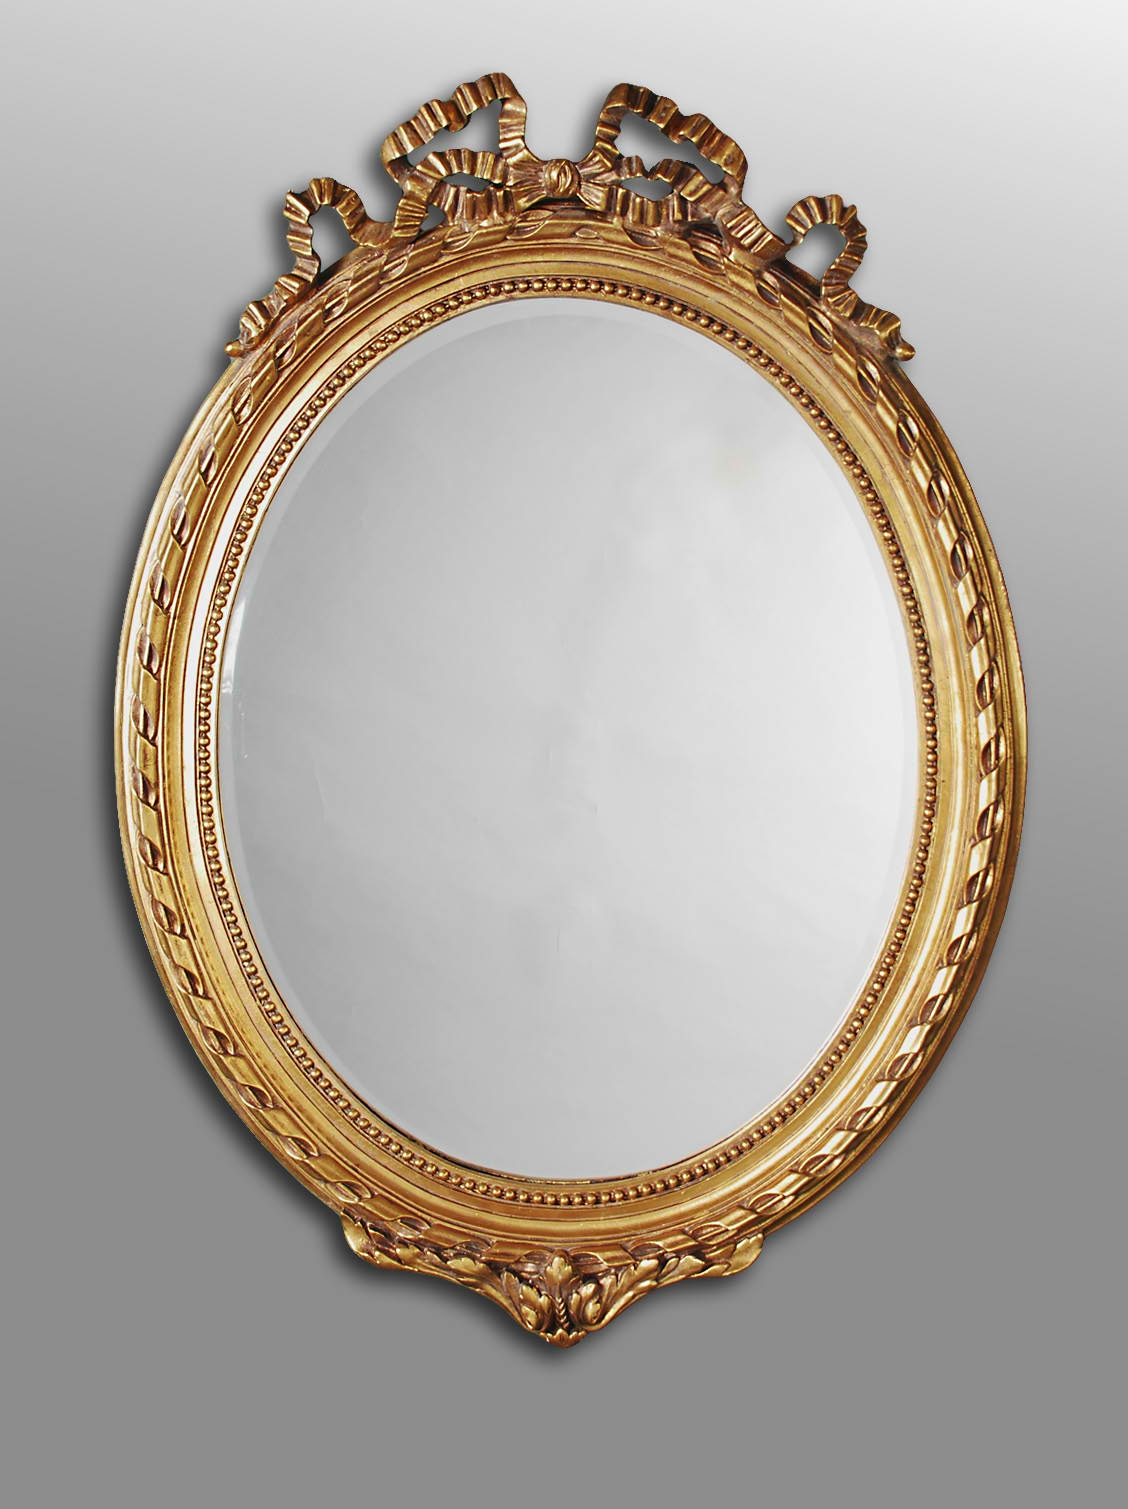 Tips On Making An Antique Mirror With Gold Antique Mirrors (Photo 15 of 15)